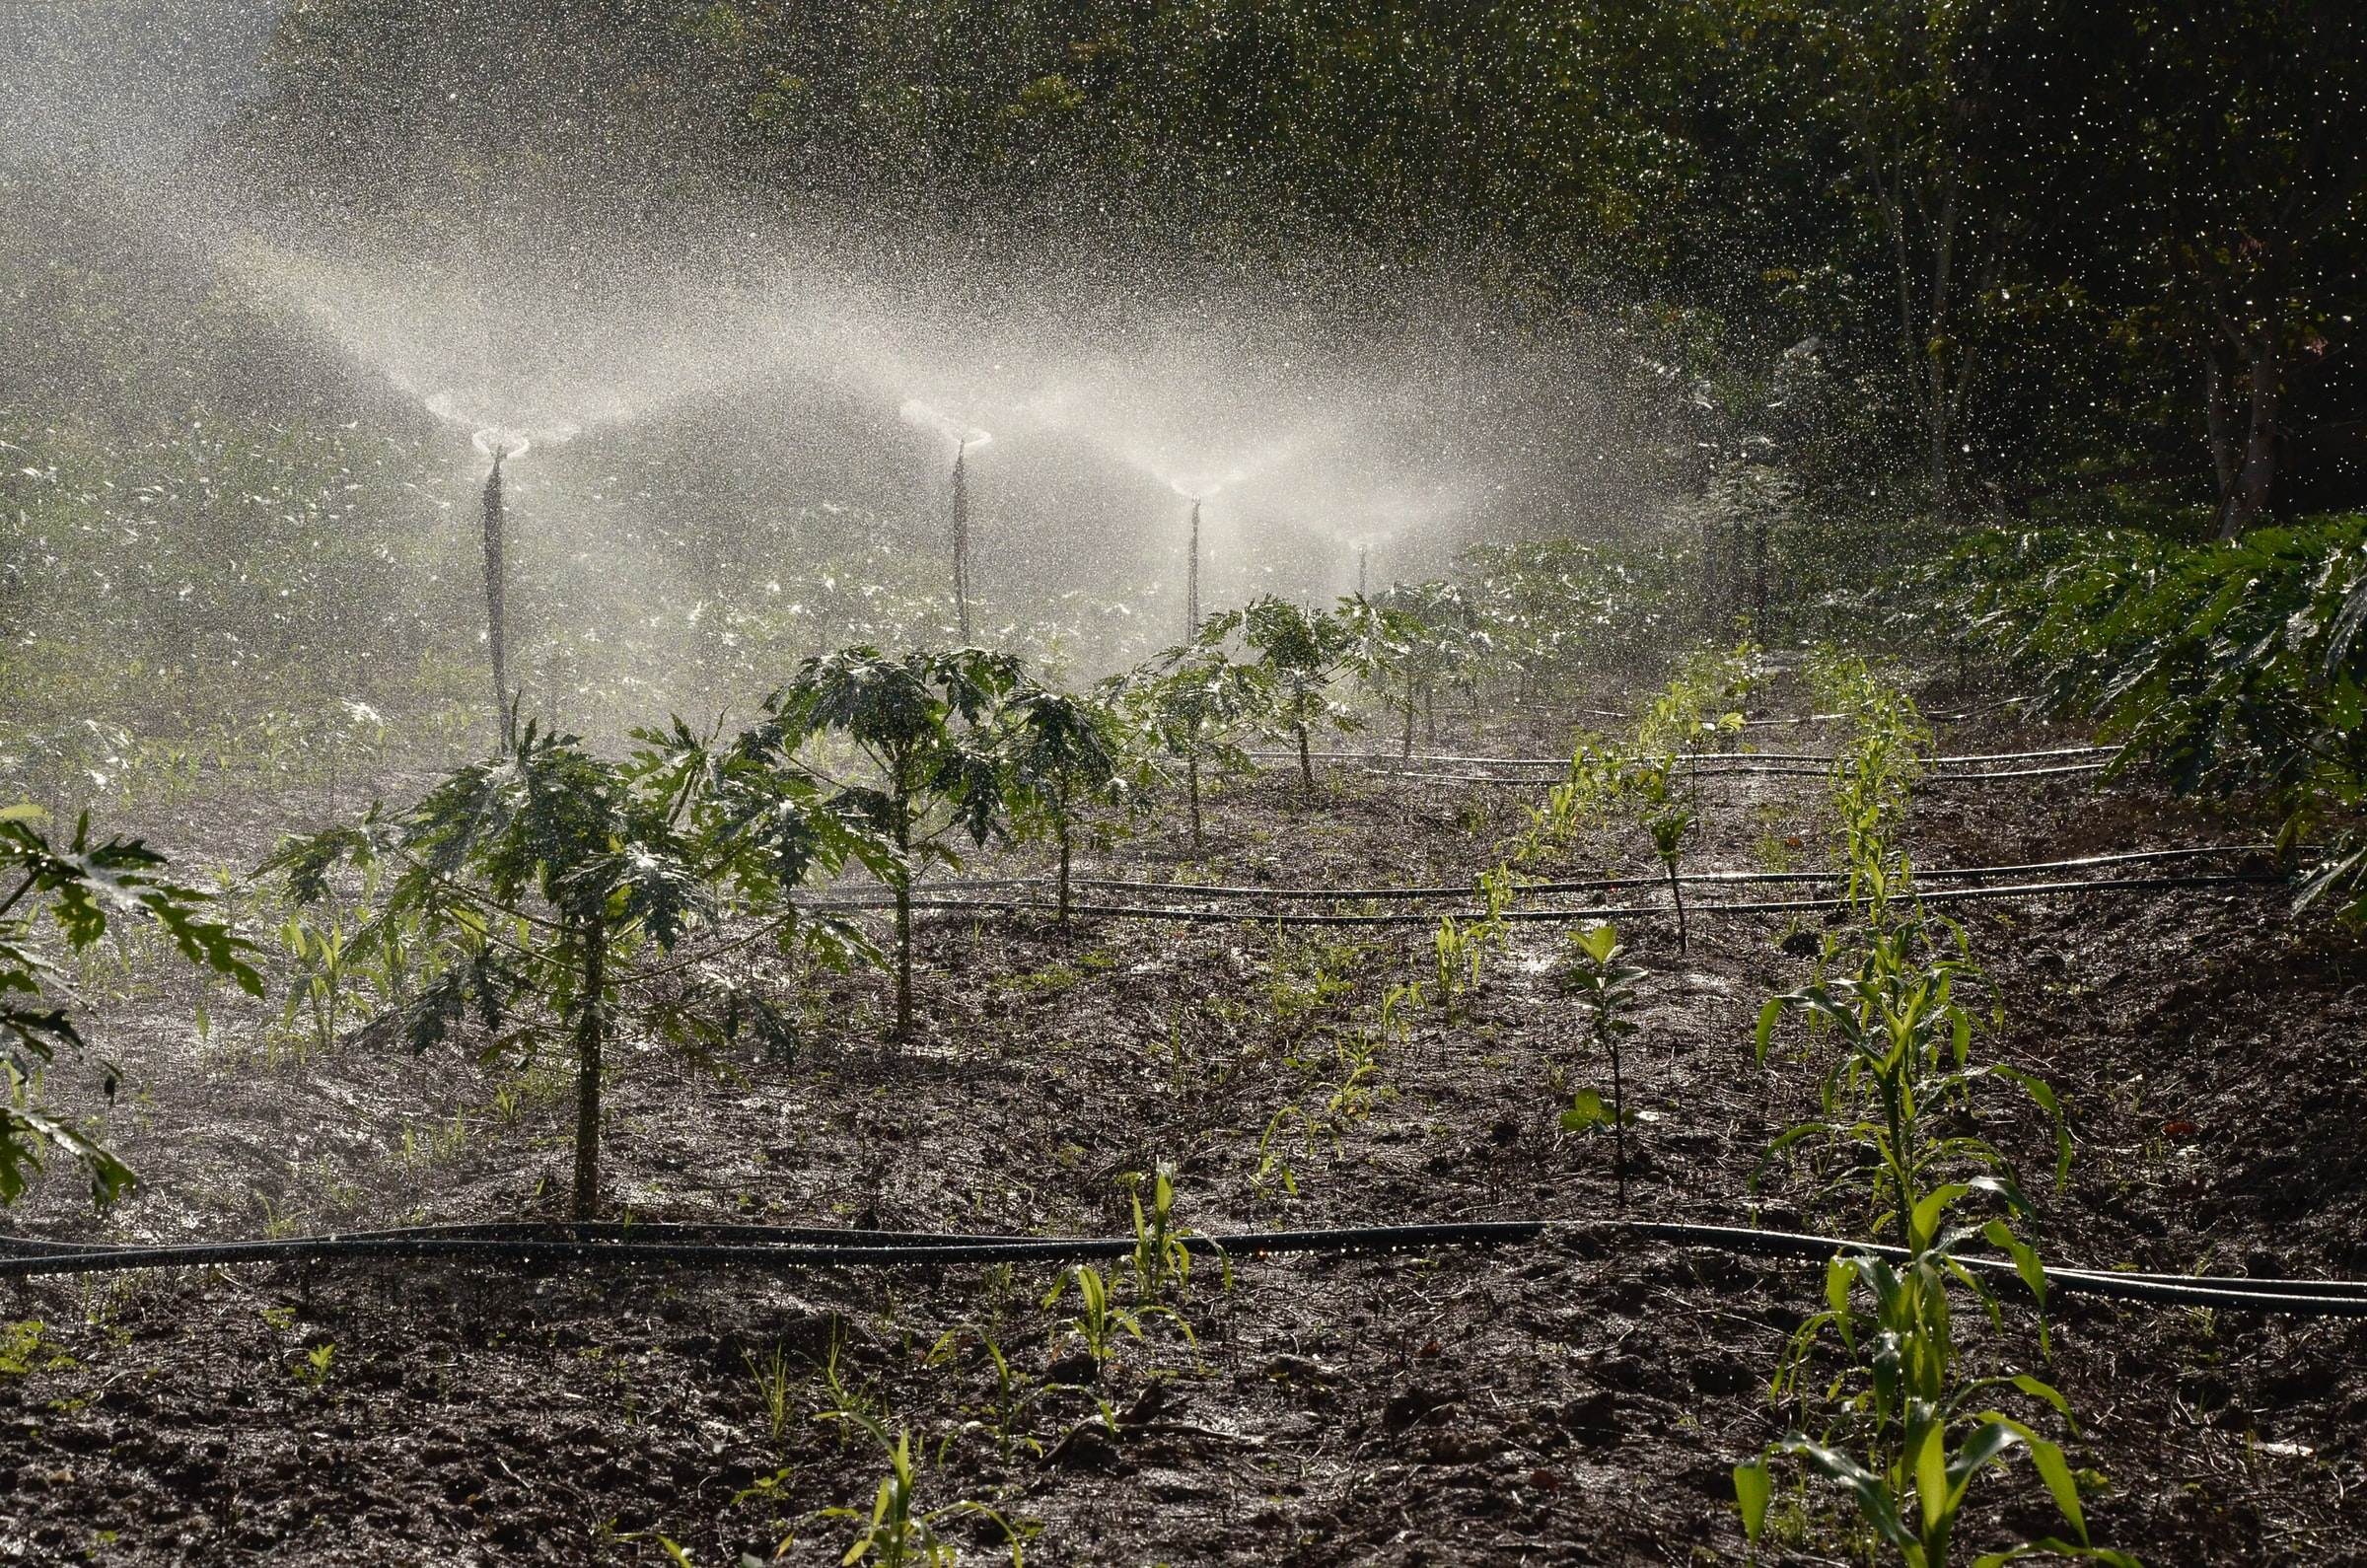 irrigated system